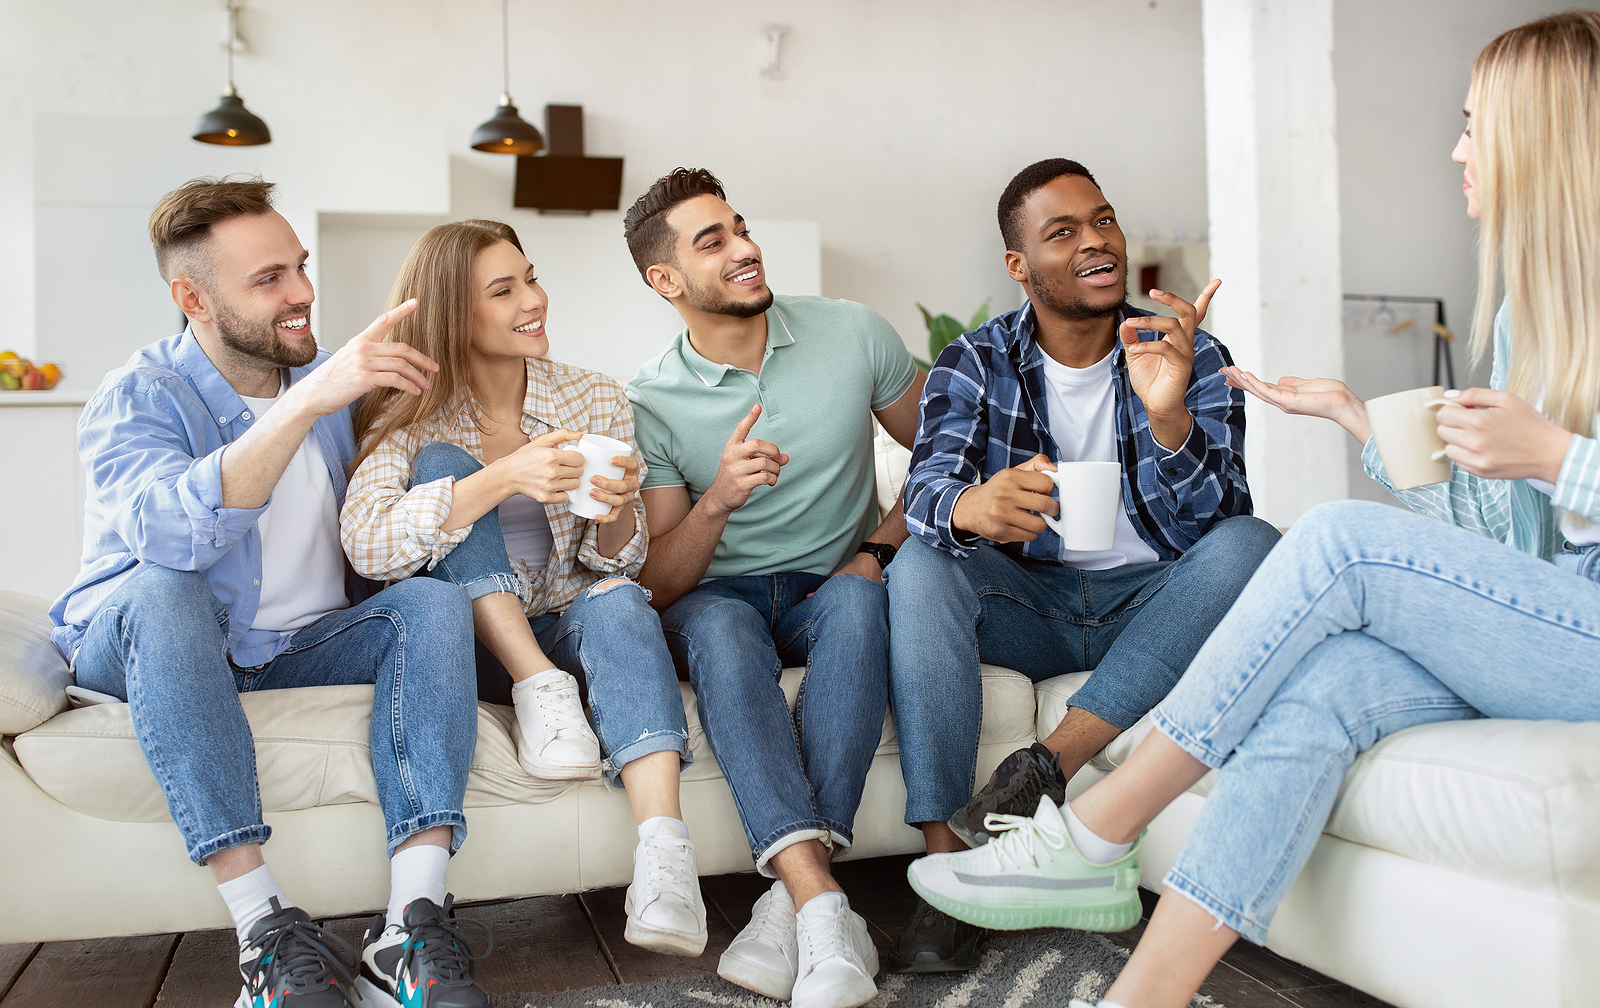 Image of several friends of different ethnicities sitting on a couch together with their coffee mugs asking questions to the blond haired woman on the right.